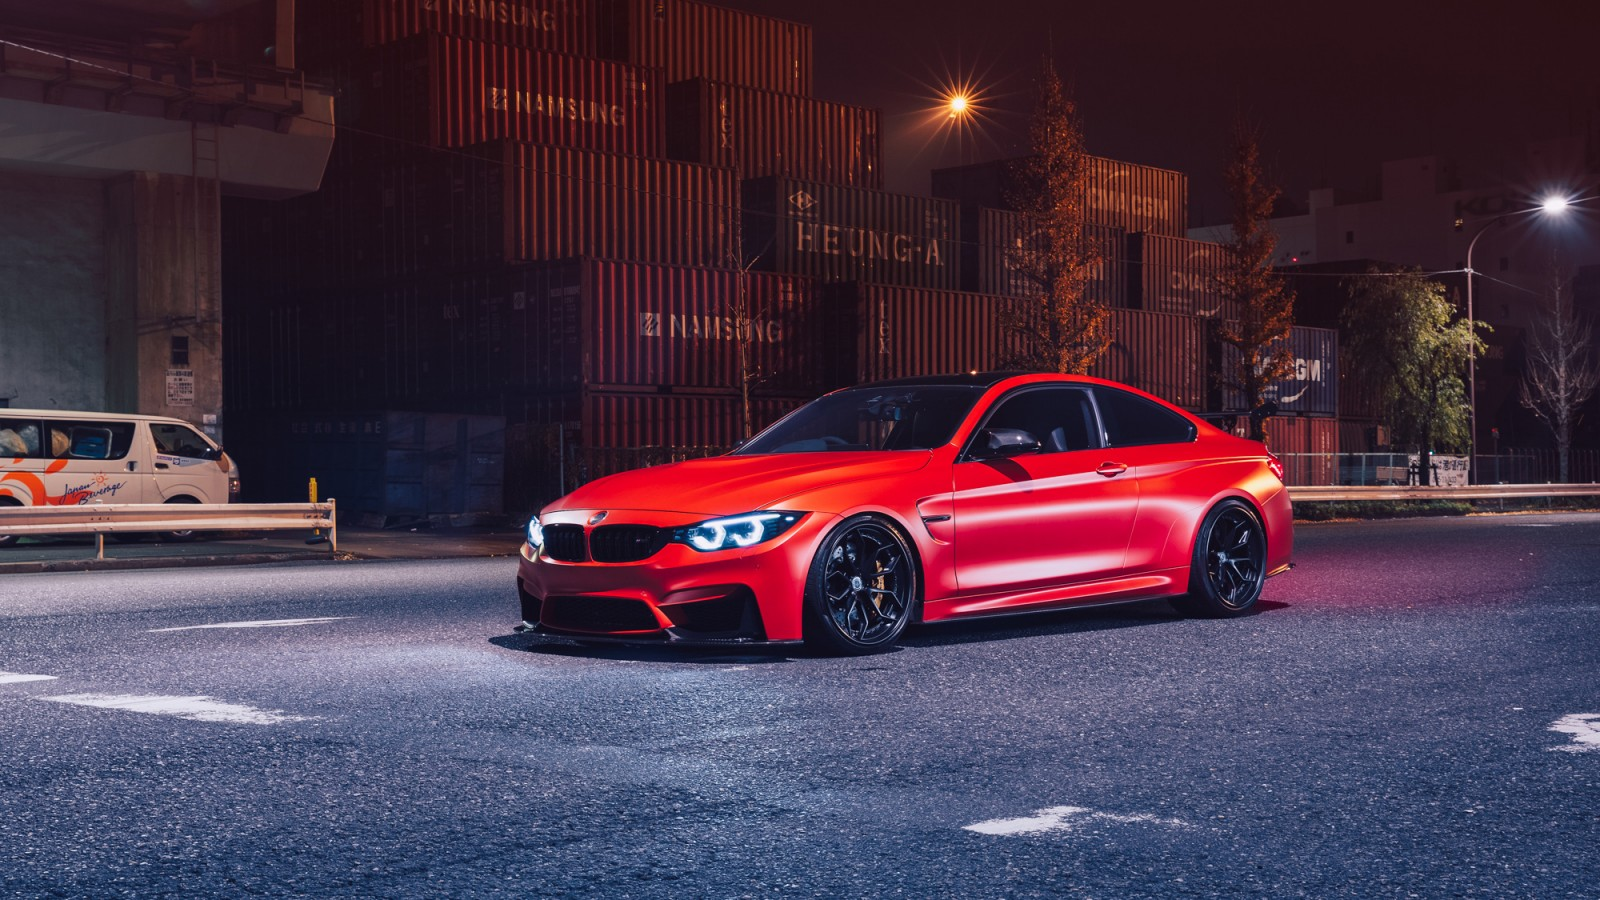 BMW M4 in Tokyo Wallpaper | HD Car Wallpapers | ID #11796